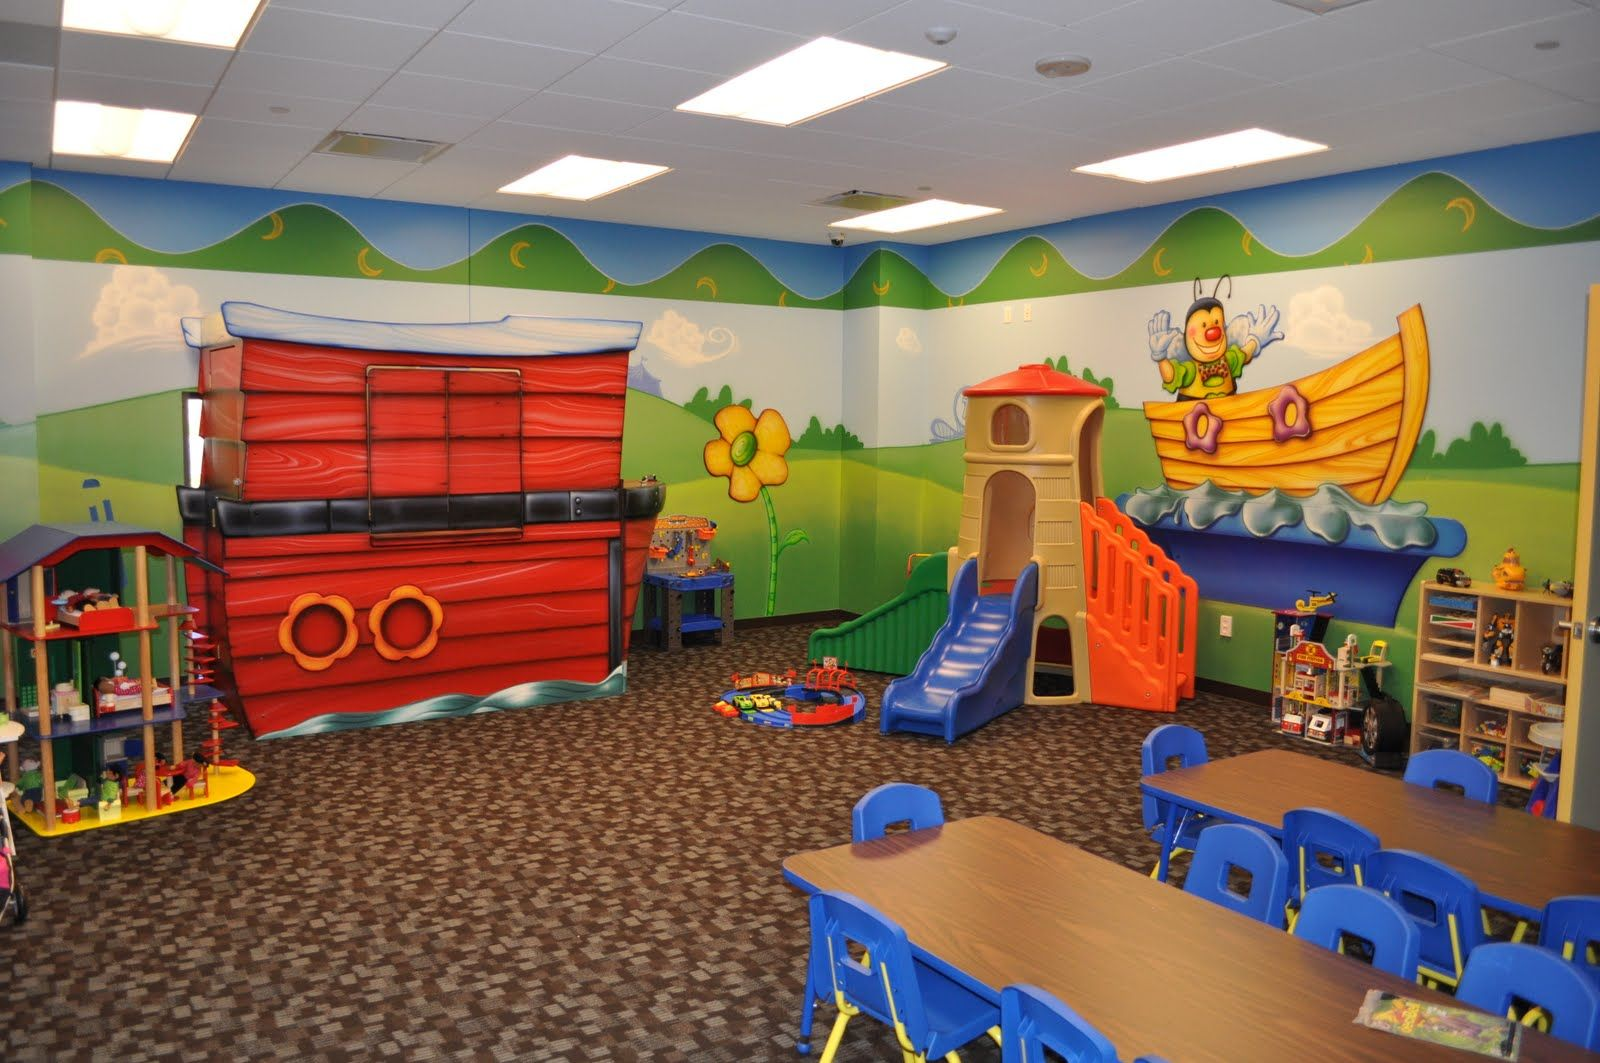 Children S And Kids Room Ideas Designs Inspiration: Nursery & Classroom Layout, Design & Decorating